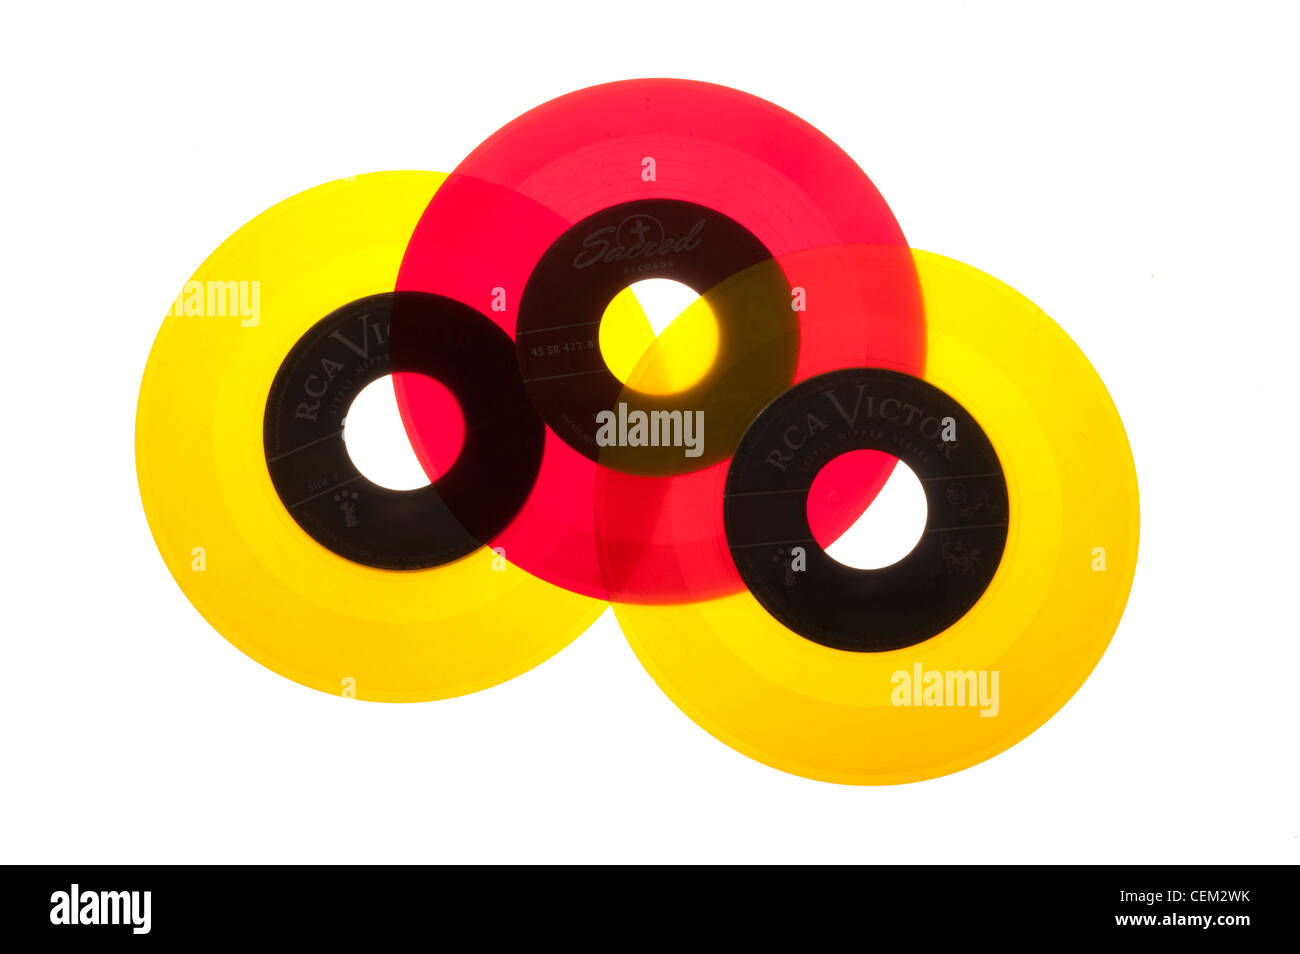 45 RPM records from the 1950's mid-century modern, Vinyl - Stock Image